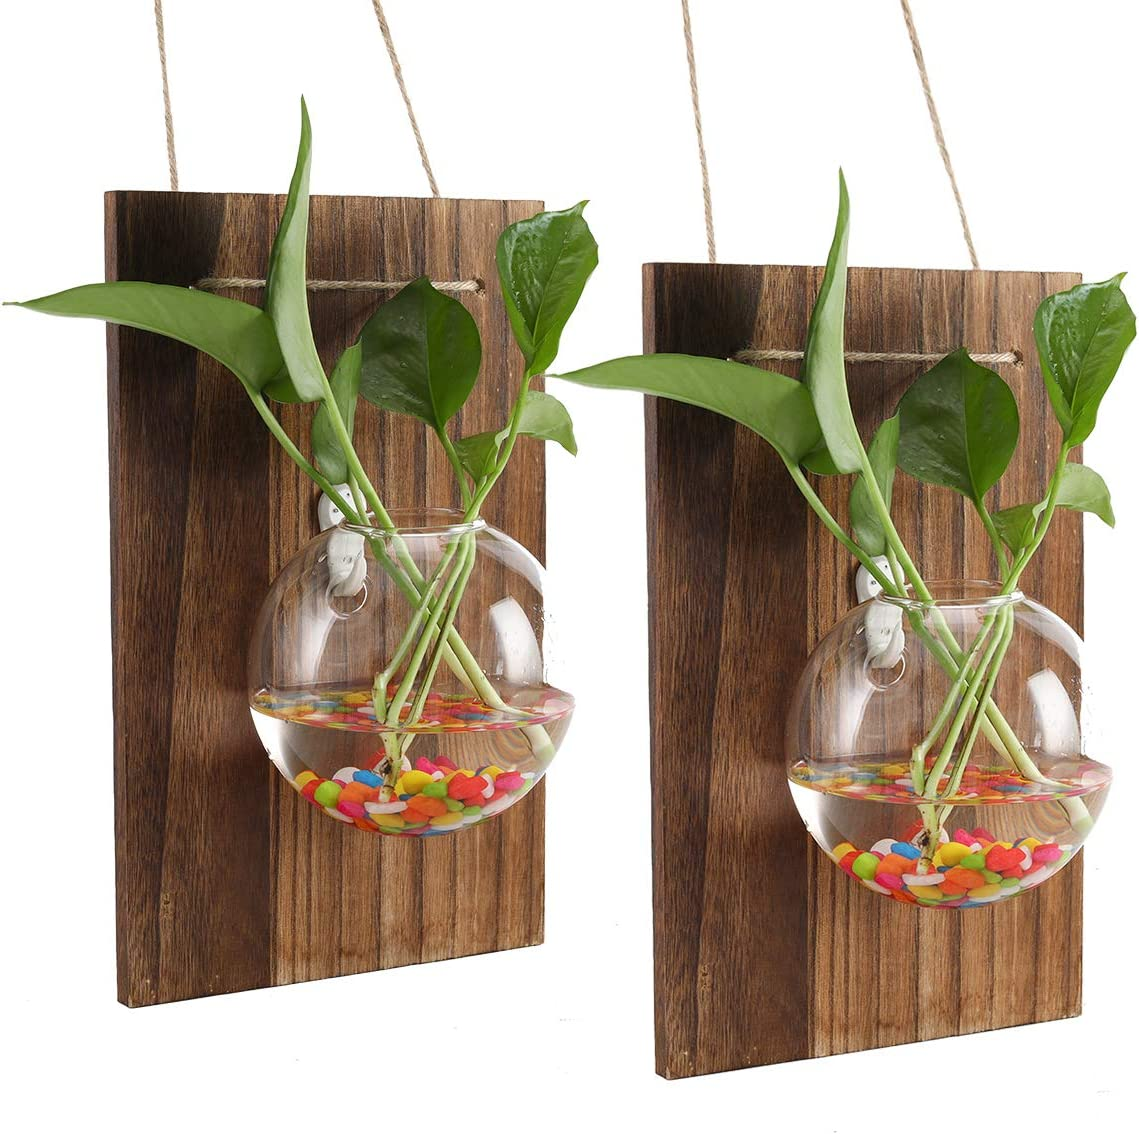 PAG Set of 2 Hanging Plant Terrariums Kit Wall Hydroponics Air Planter Holder with 2 Glass Vase and 2 Solid Wood Boards for Home Office Garden Wedding Decoration